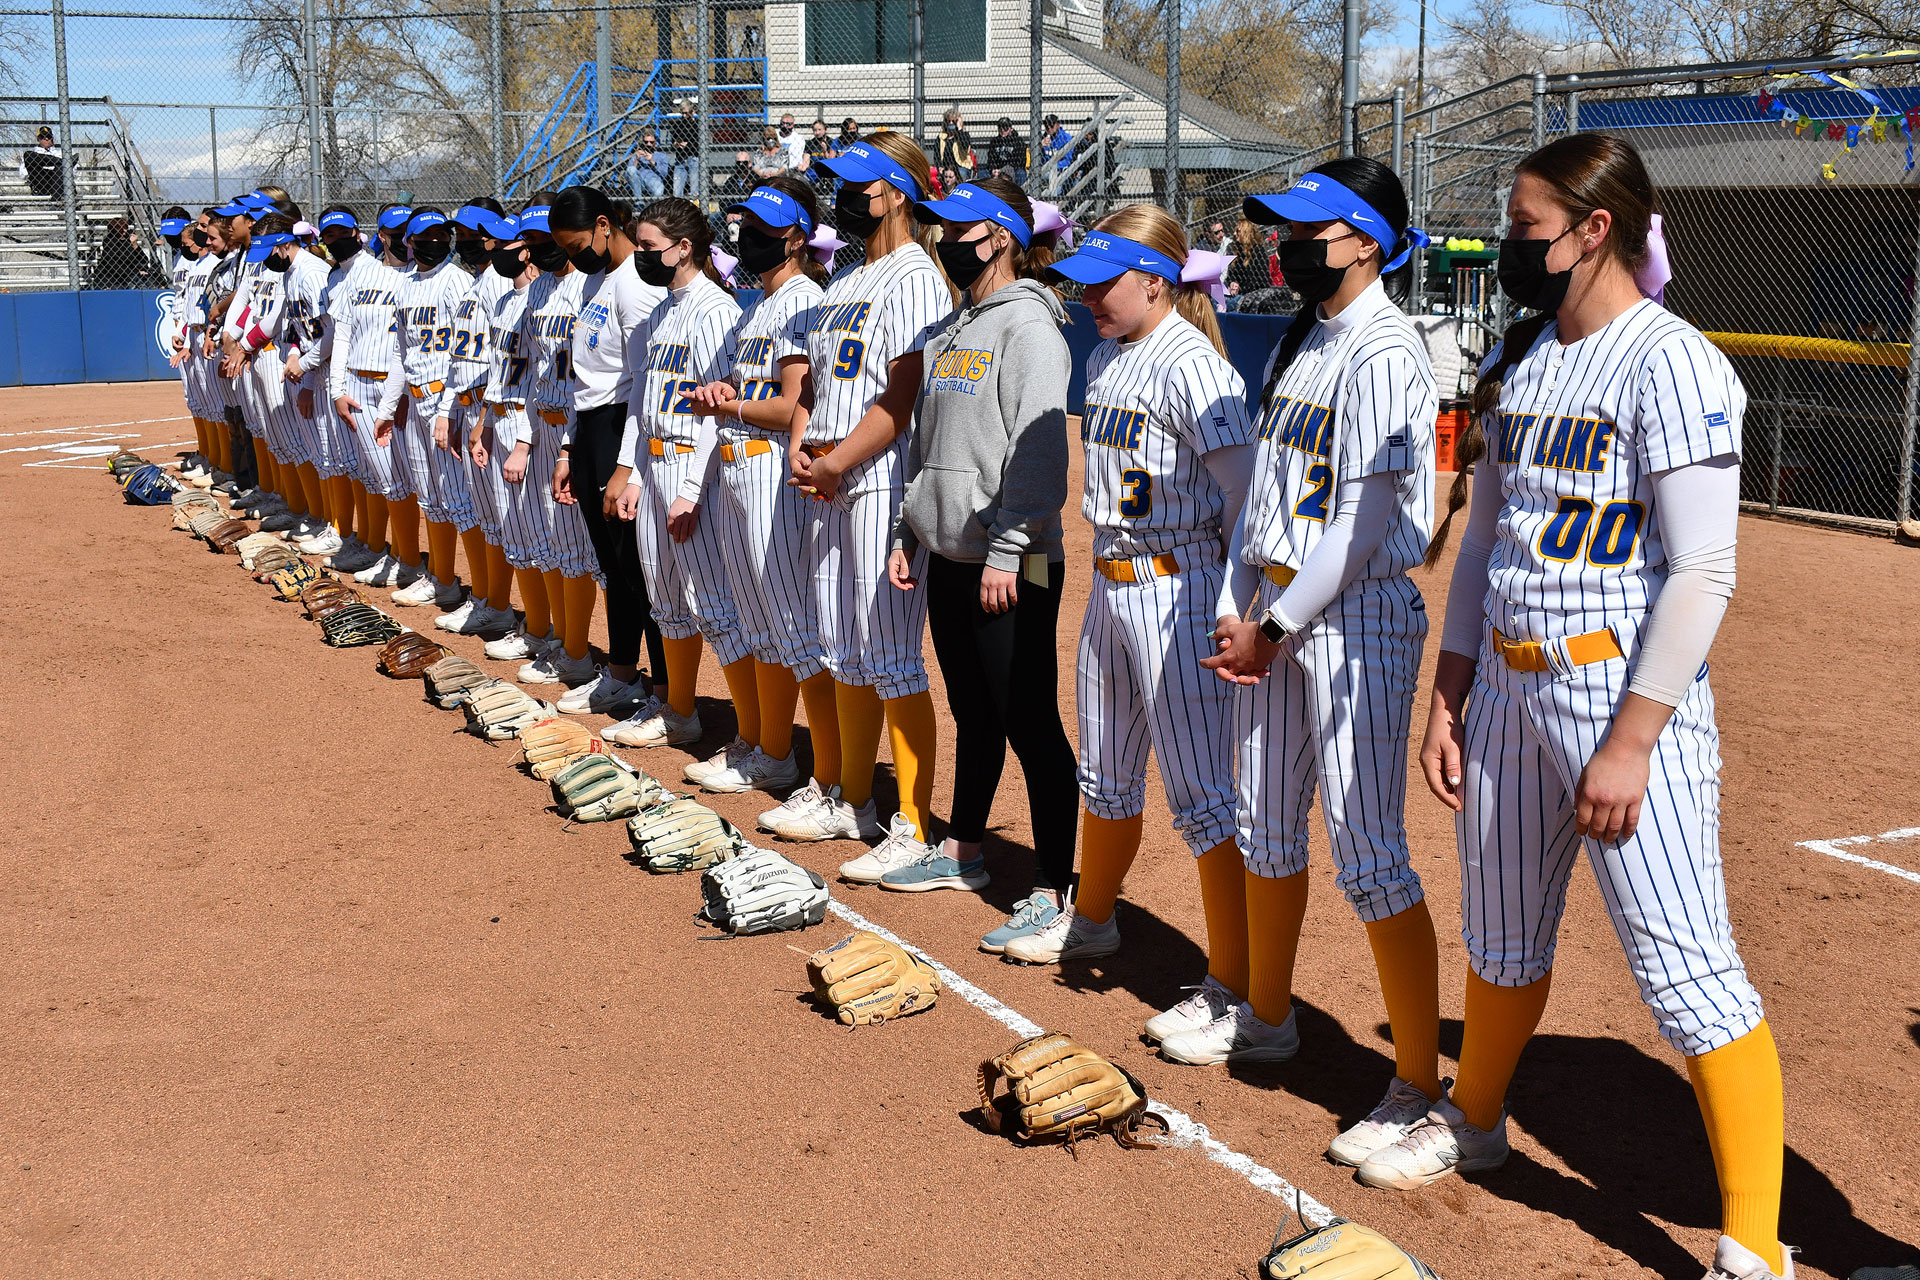 Softball team stands in a row